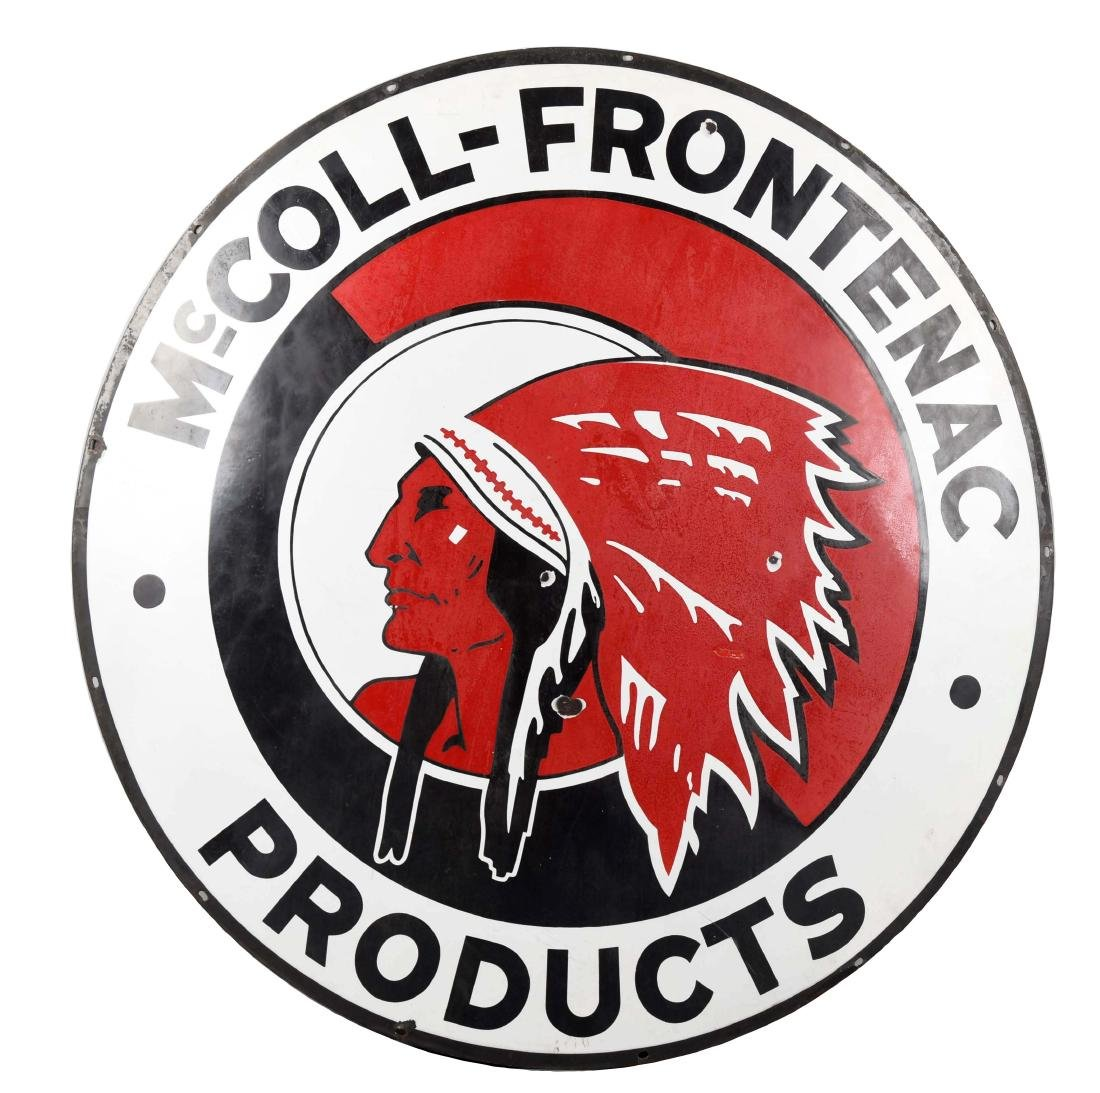 McColl-Frontenac (Red Indian) Products Porcelain Sign.